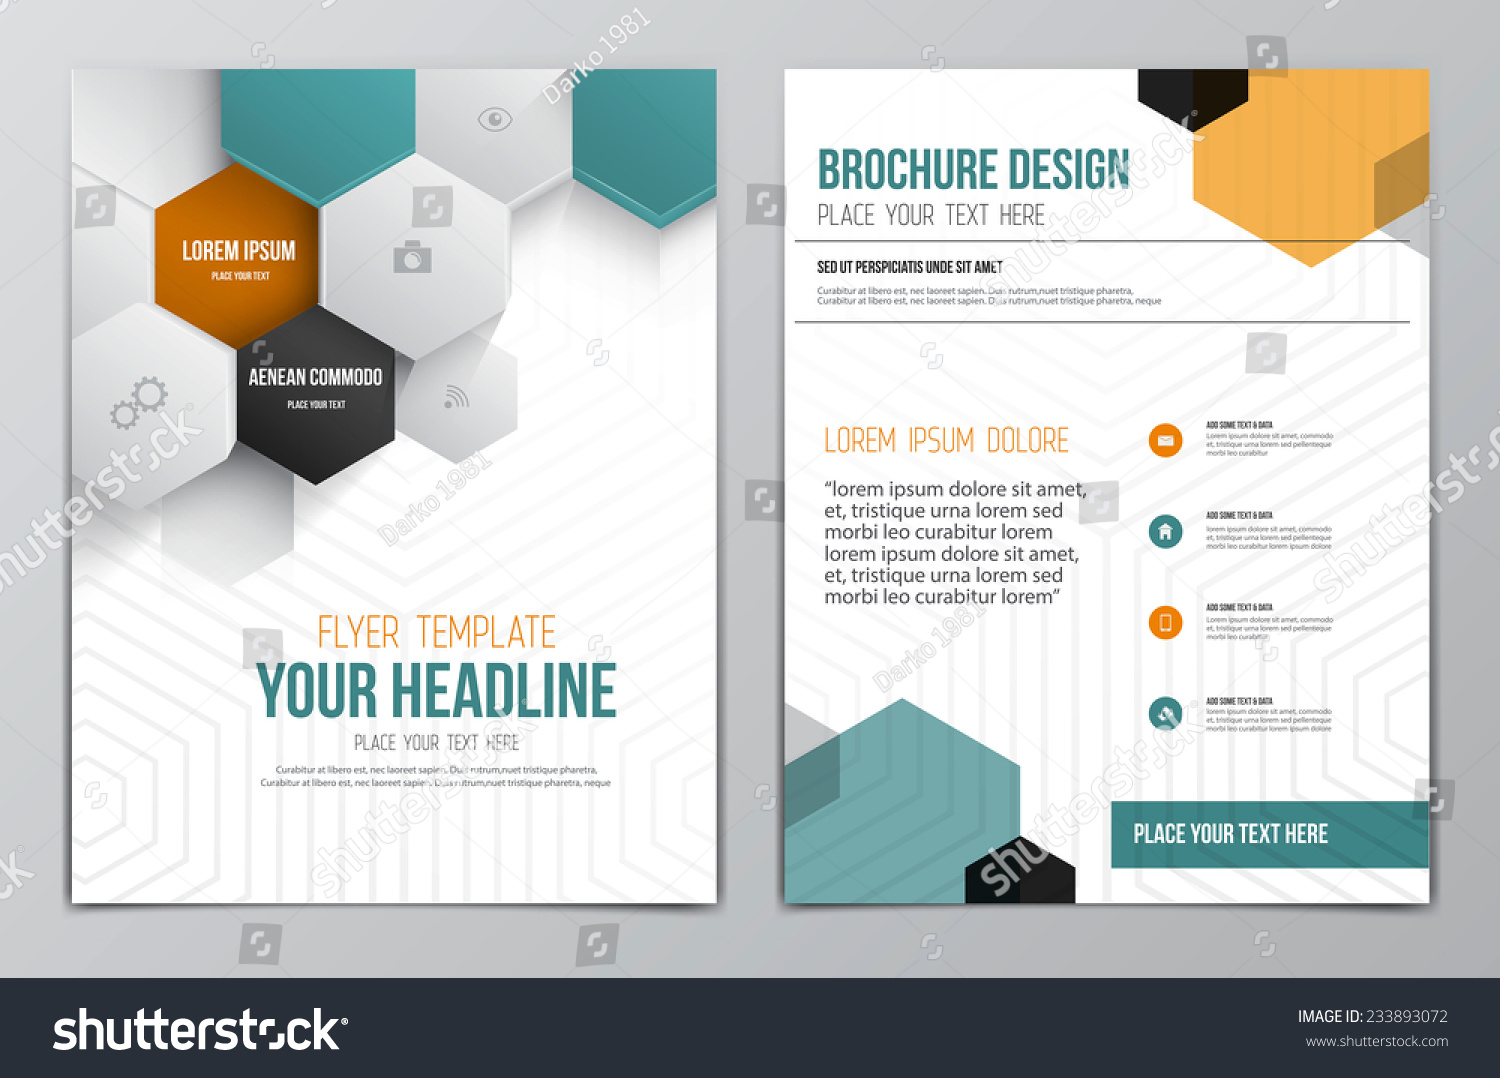 Brochure design template geometric shapes abstract stock for Modern brochure design templates